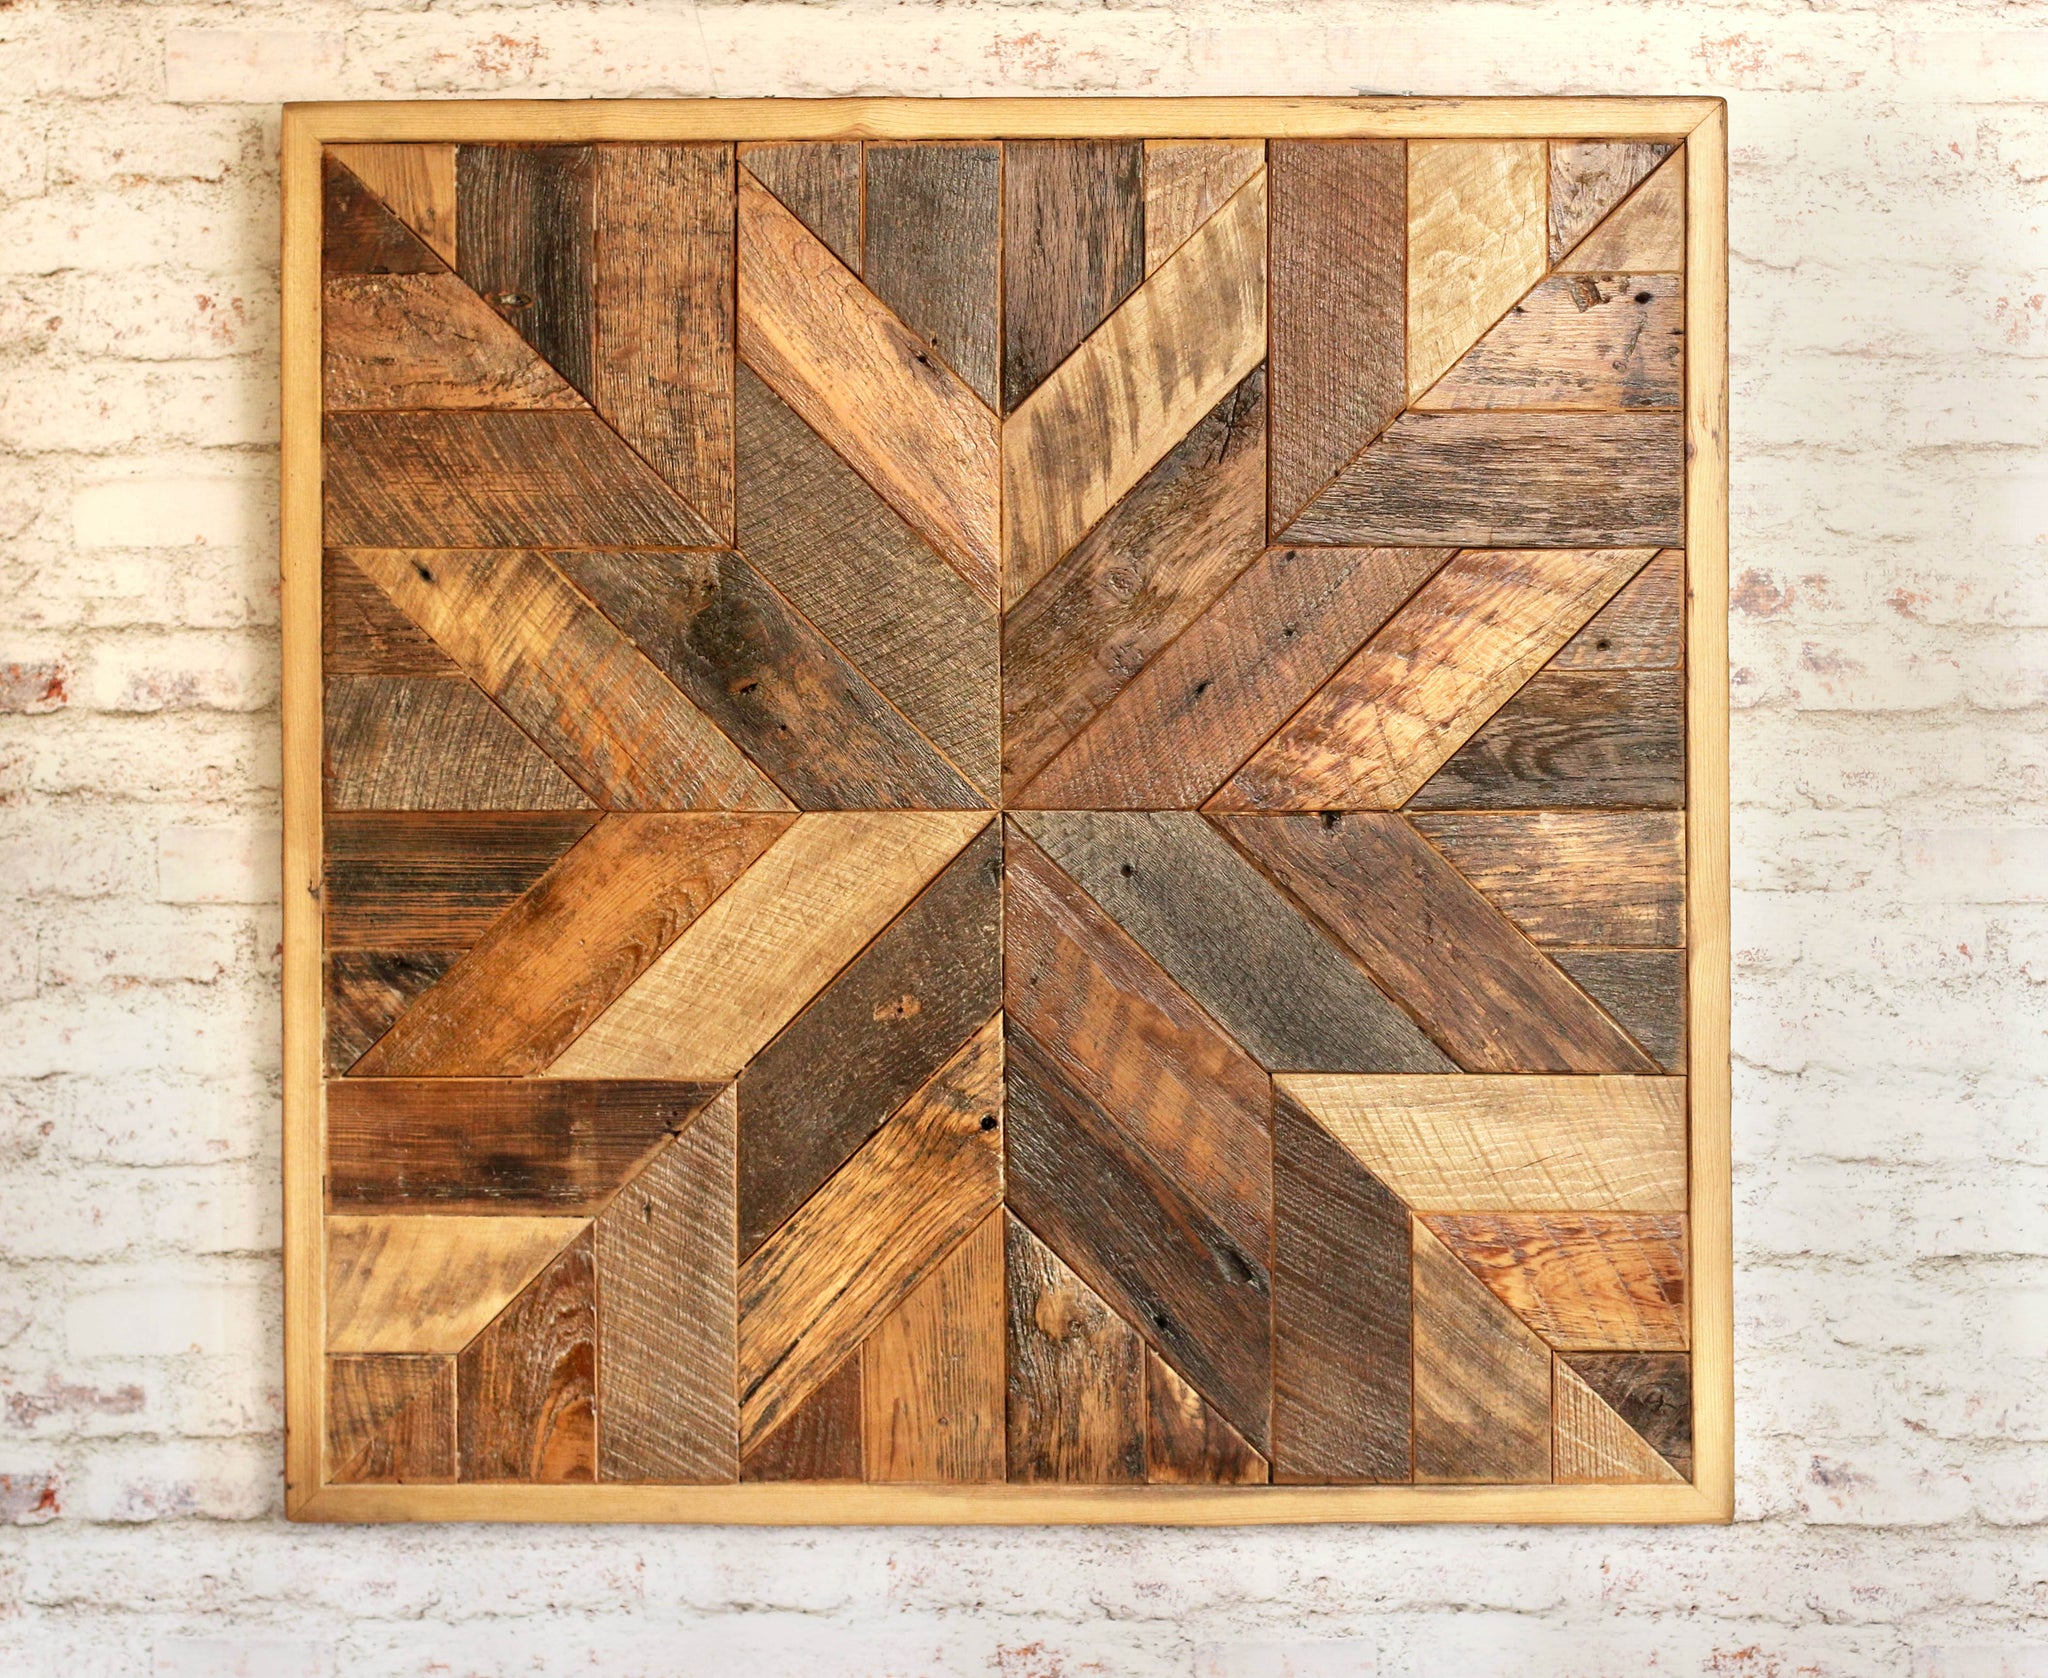 Reclaimed Wood Quilt Wall Art - Grindstone Design